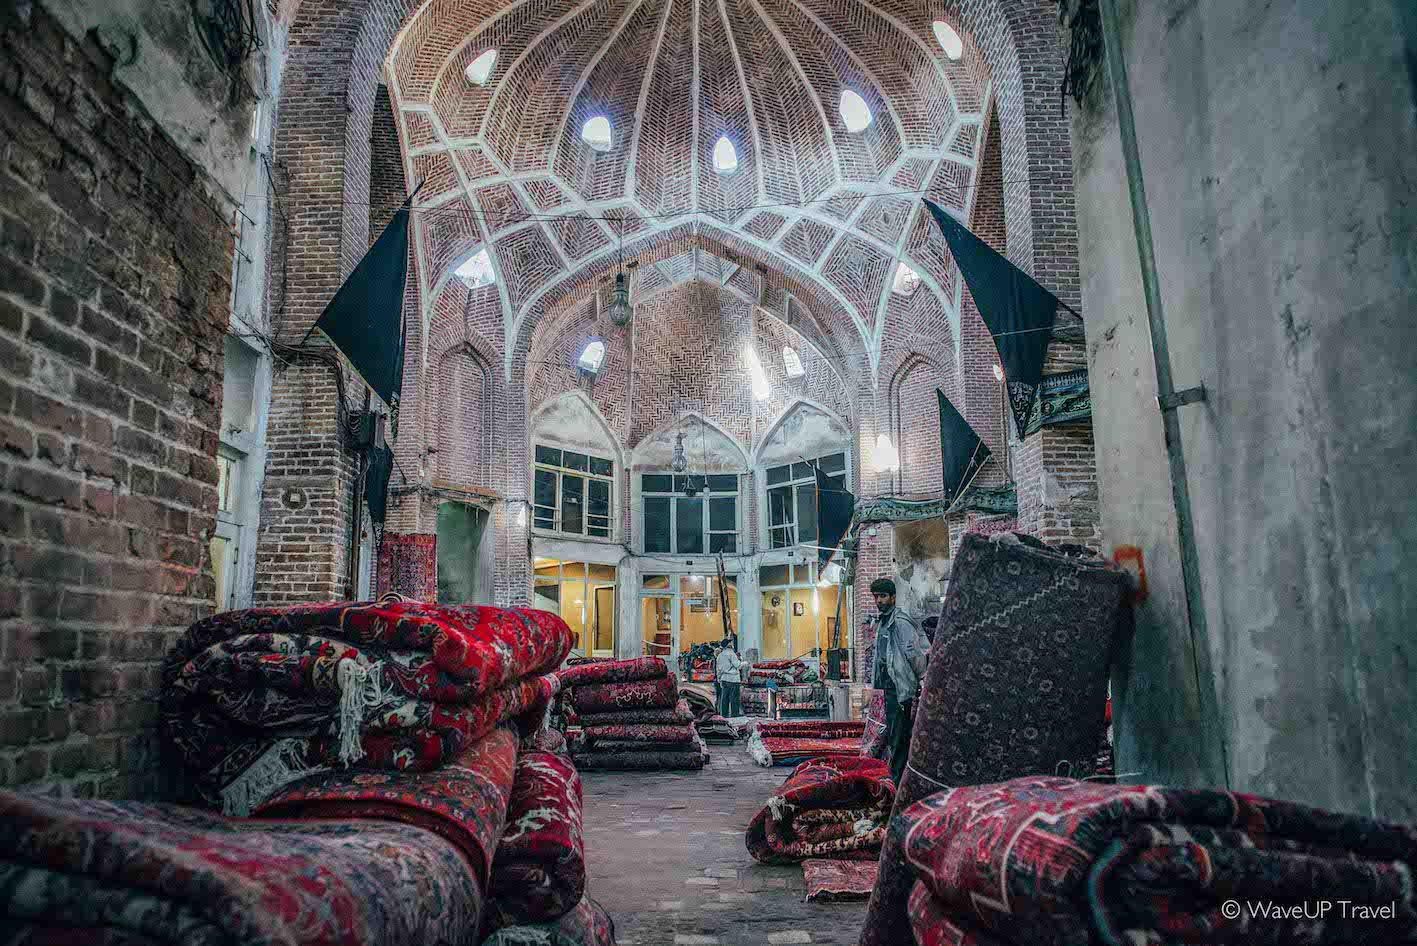 Iran tour: top-10 sights - Tabriz bazaar